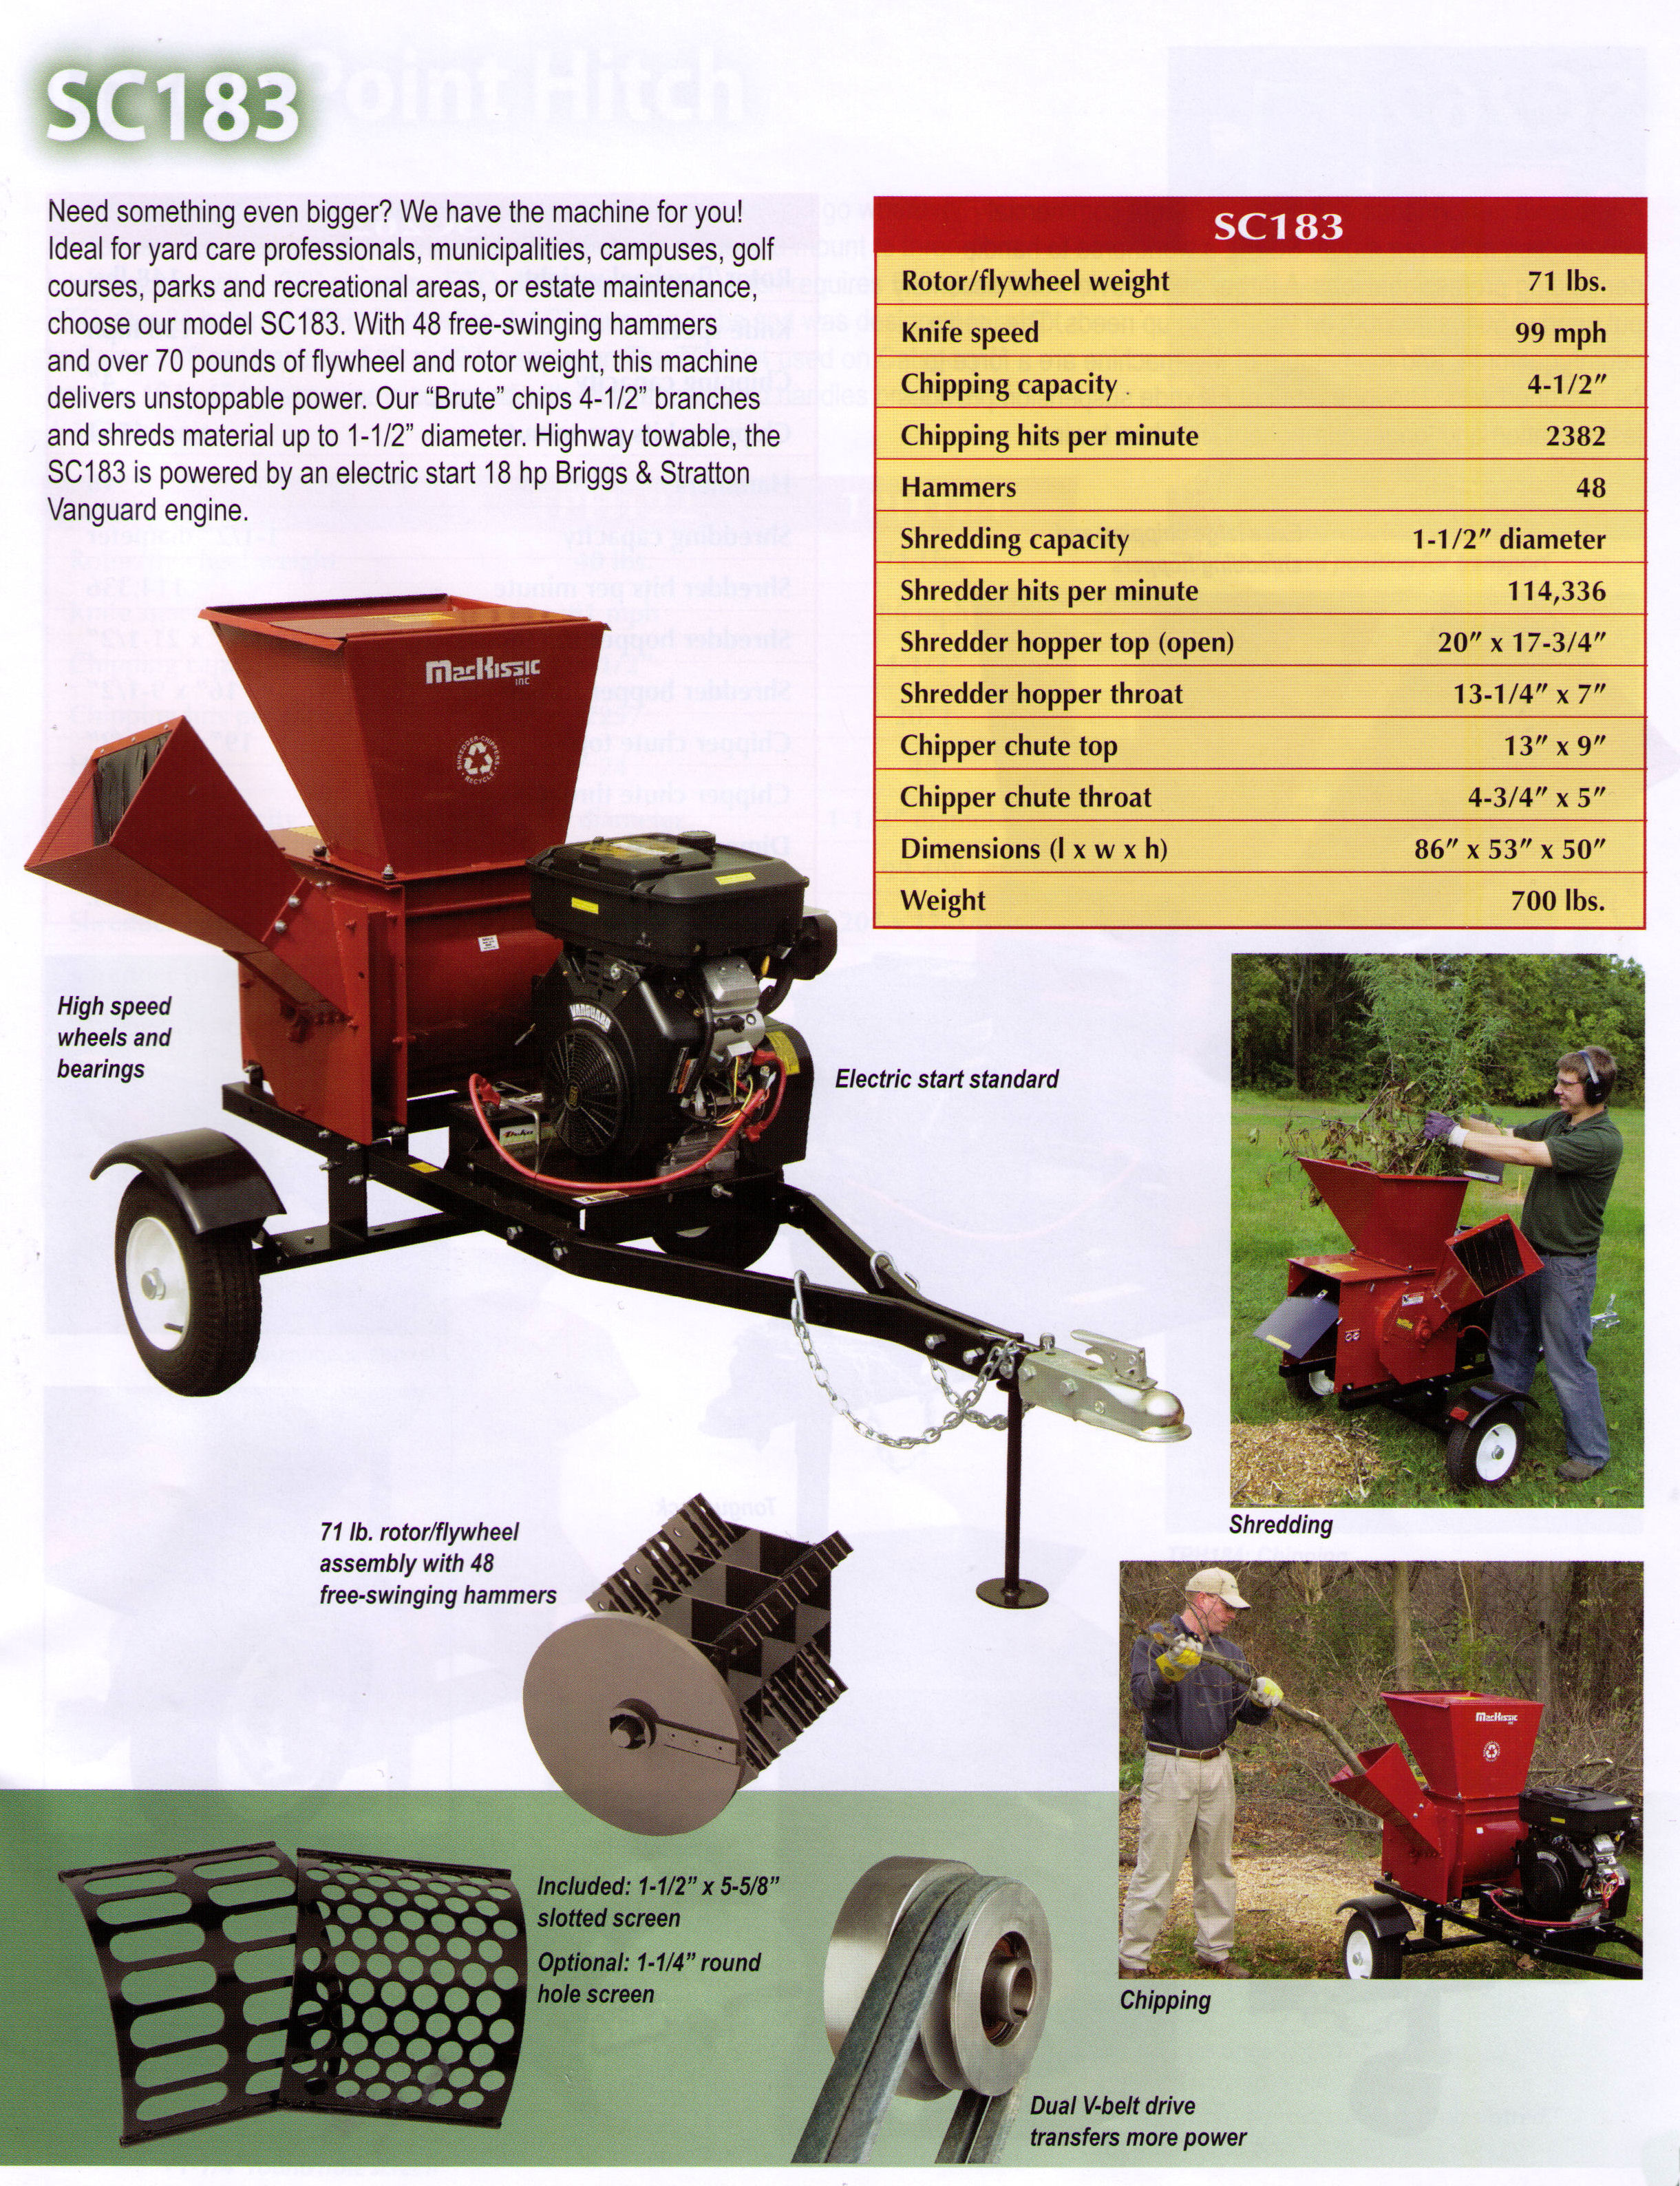 Brute Professional Series Shredder-Chipper